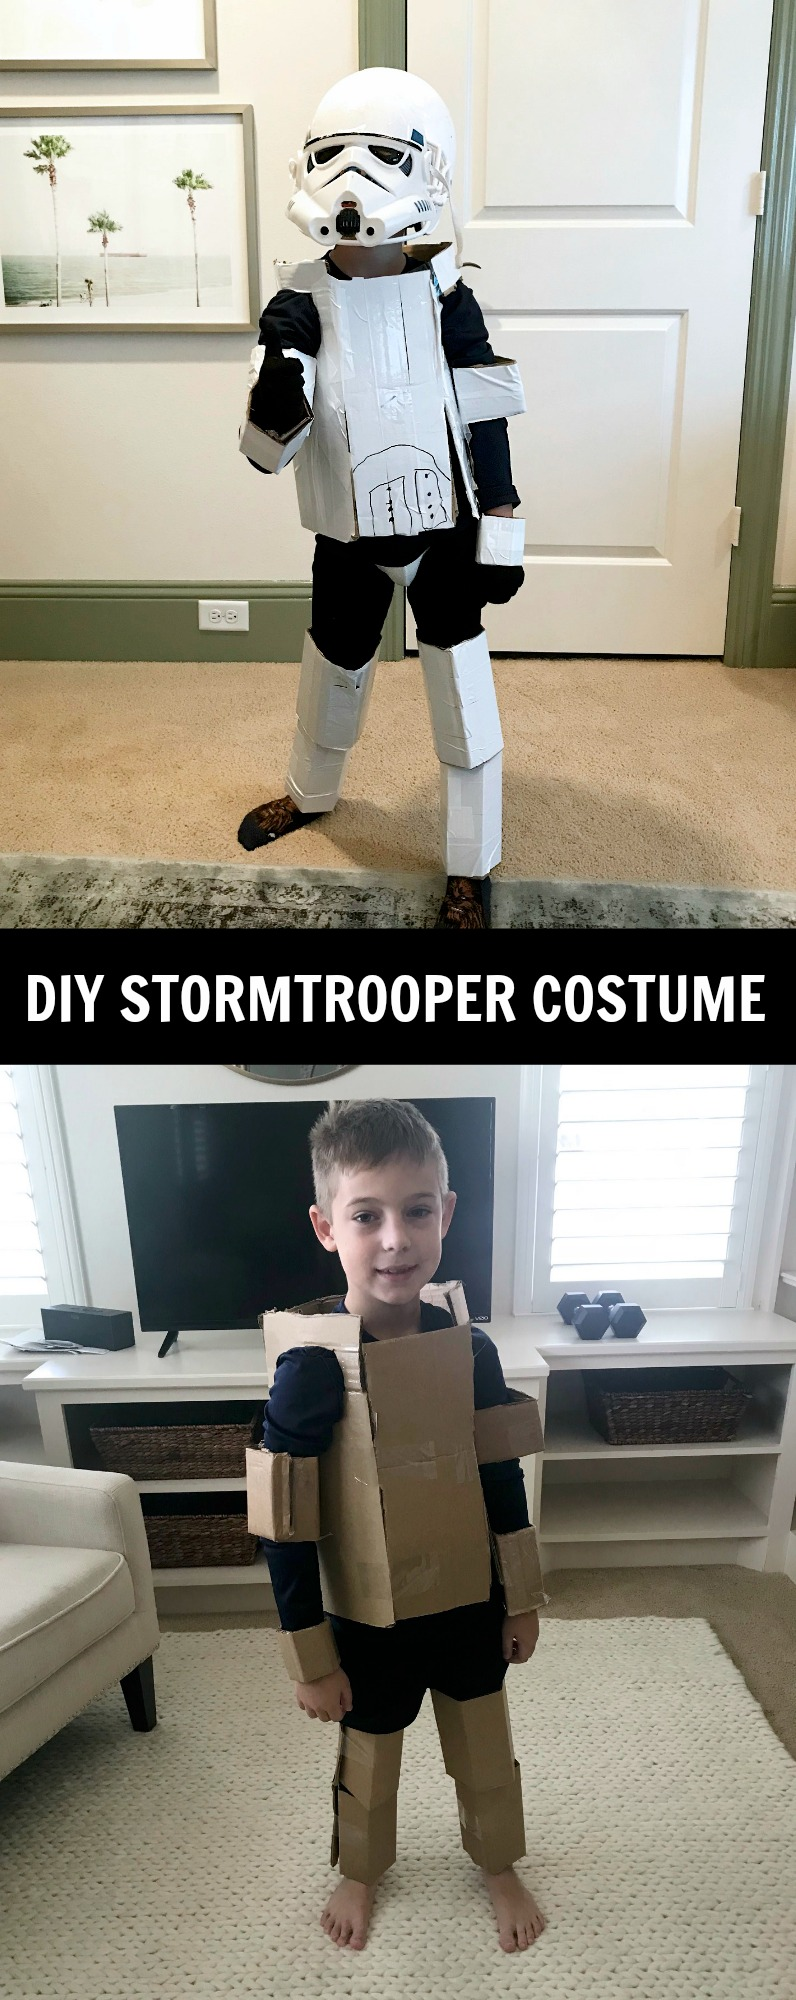 DIY Stormtrooper Costume